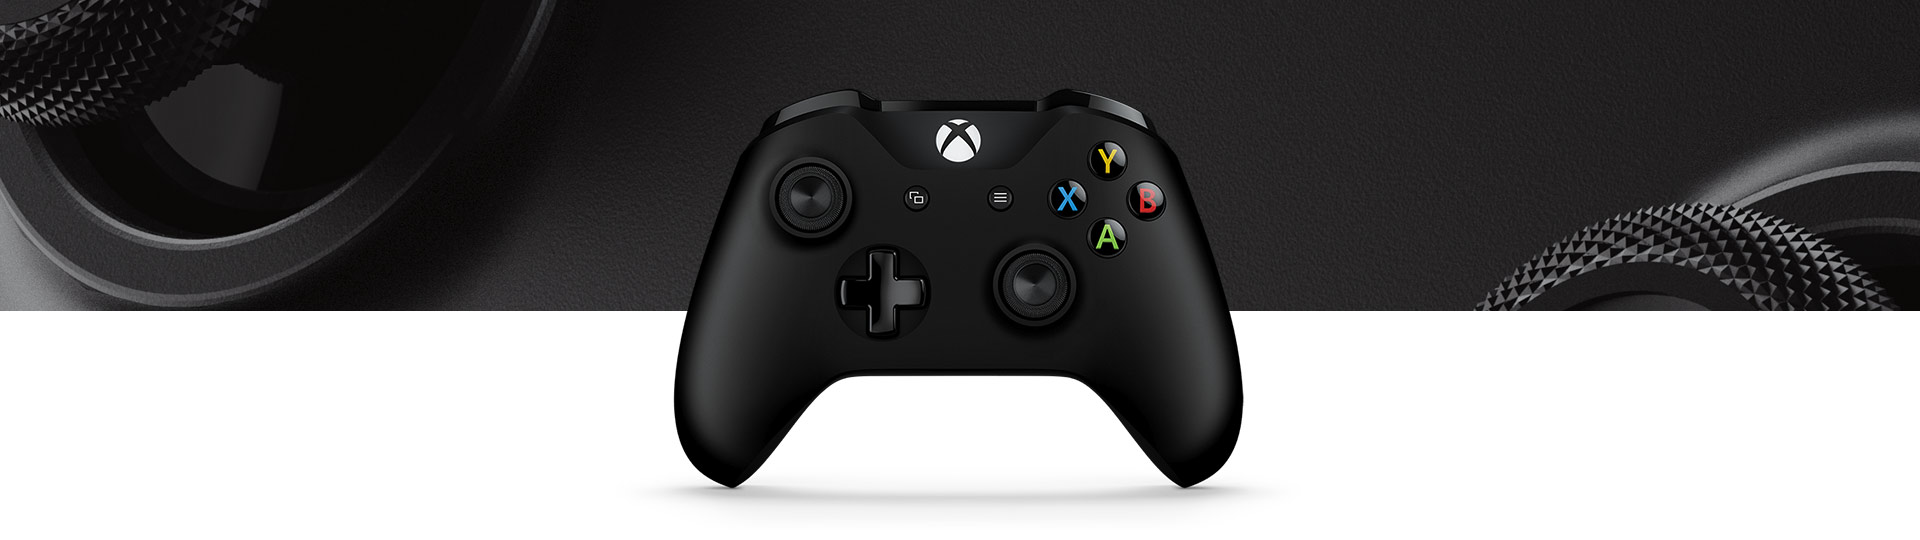 hight resolution of xbox wireless controller black